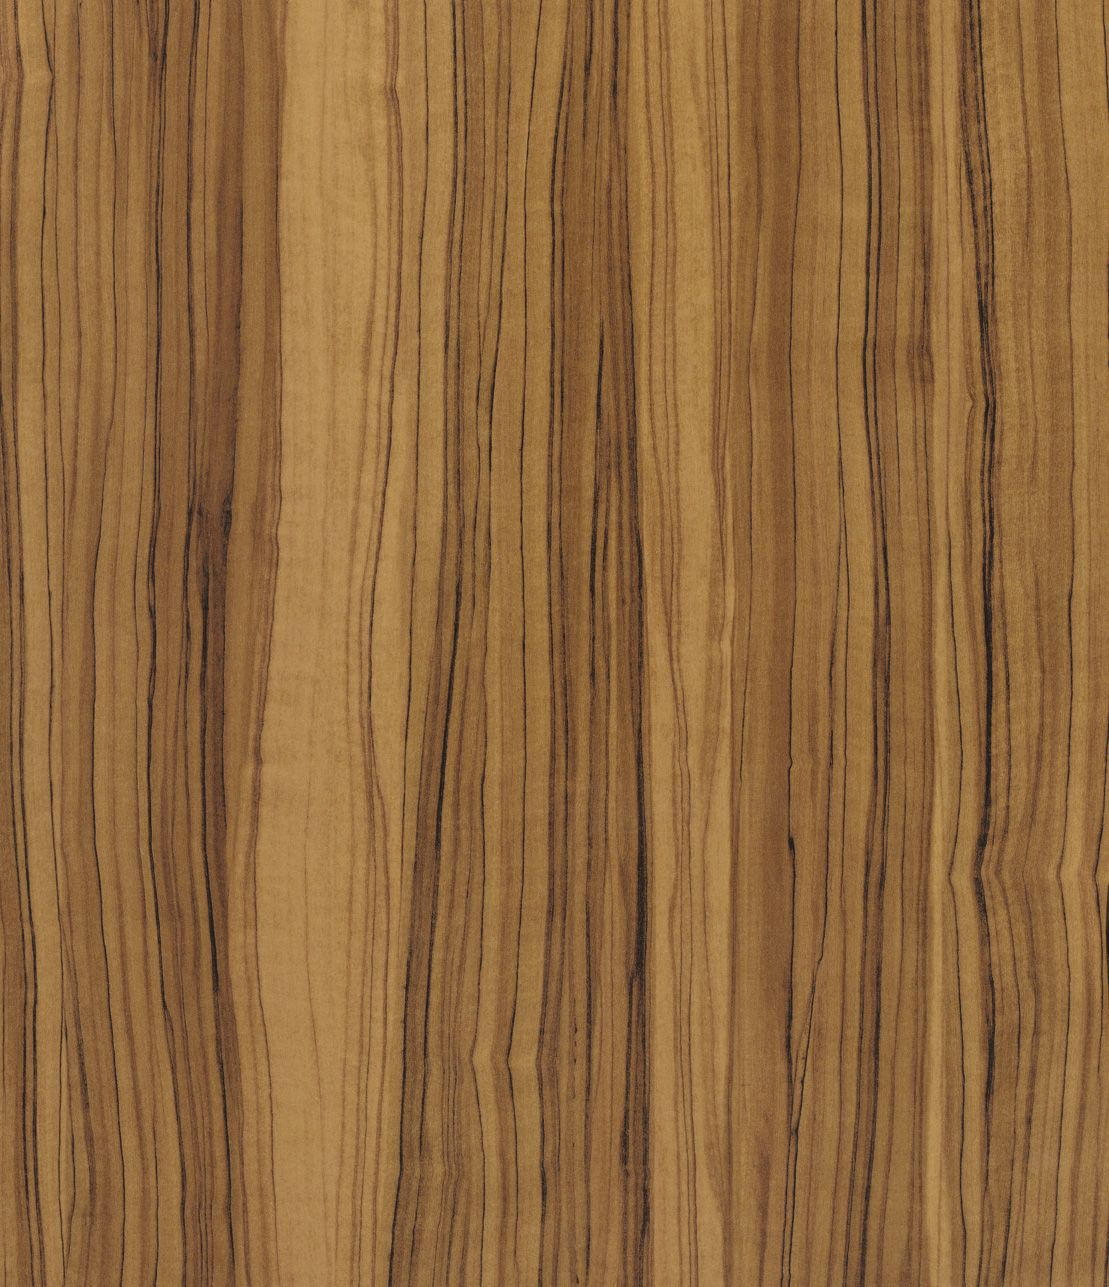 Oiled olivewood laminate formica materials